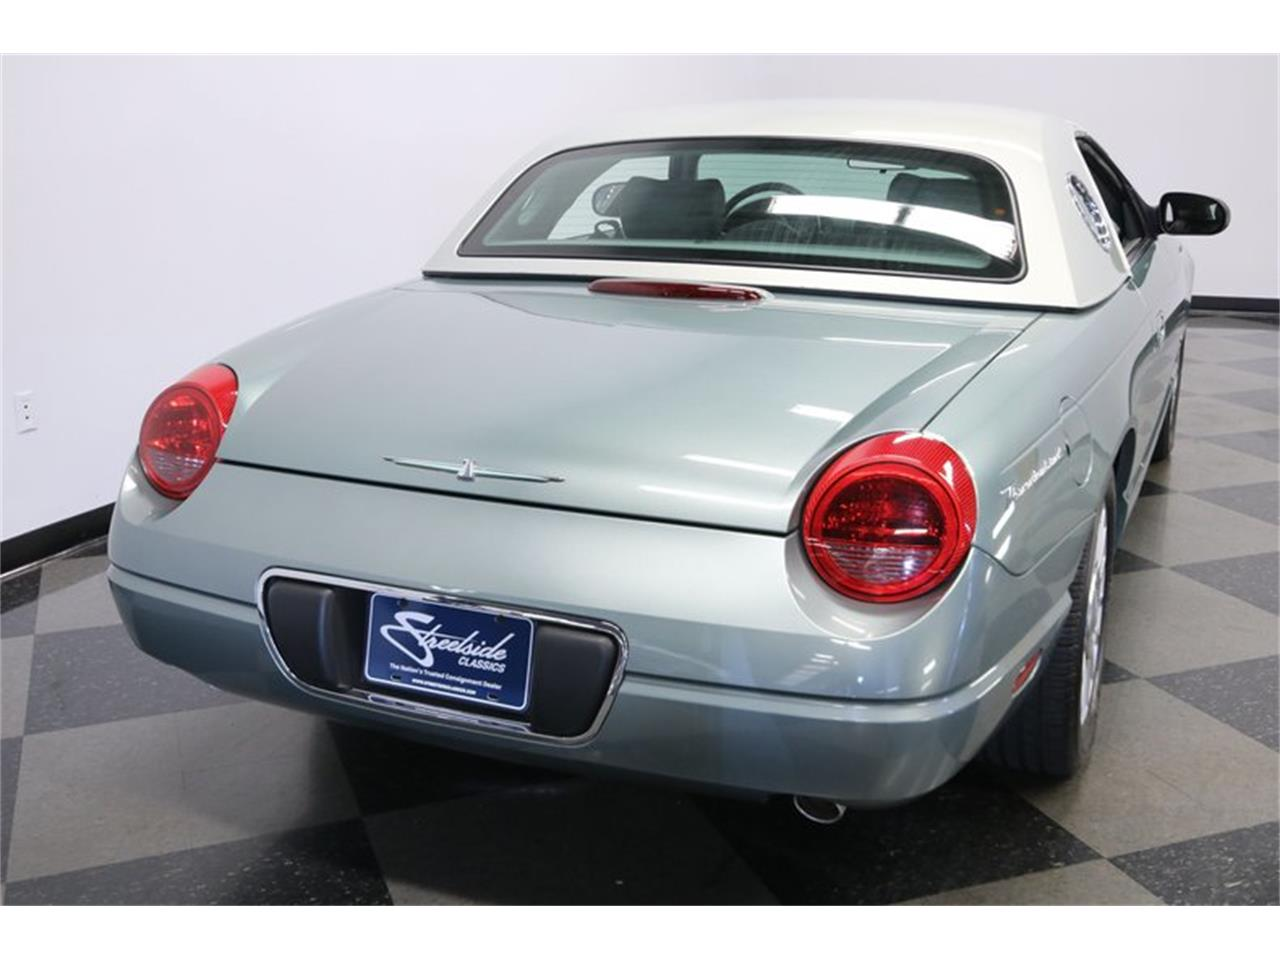 2004 Ford Thunderbird (CC-1292914) for sale in Lutz, Florida